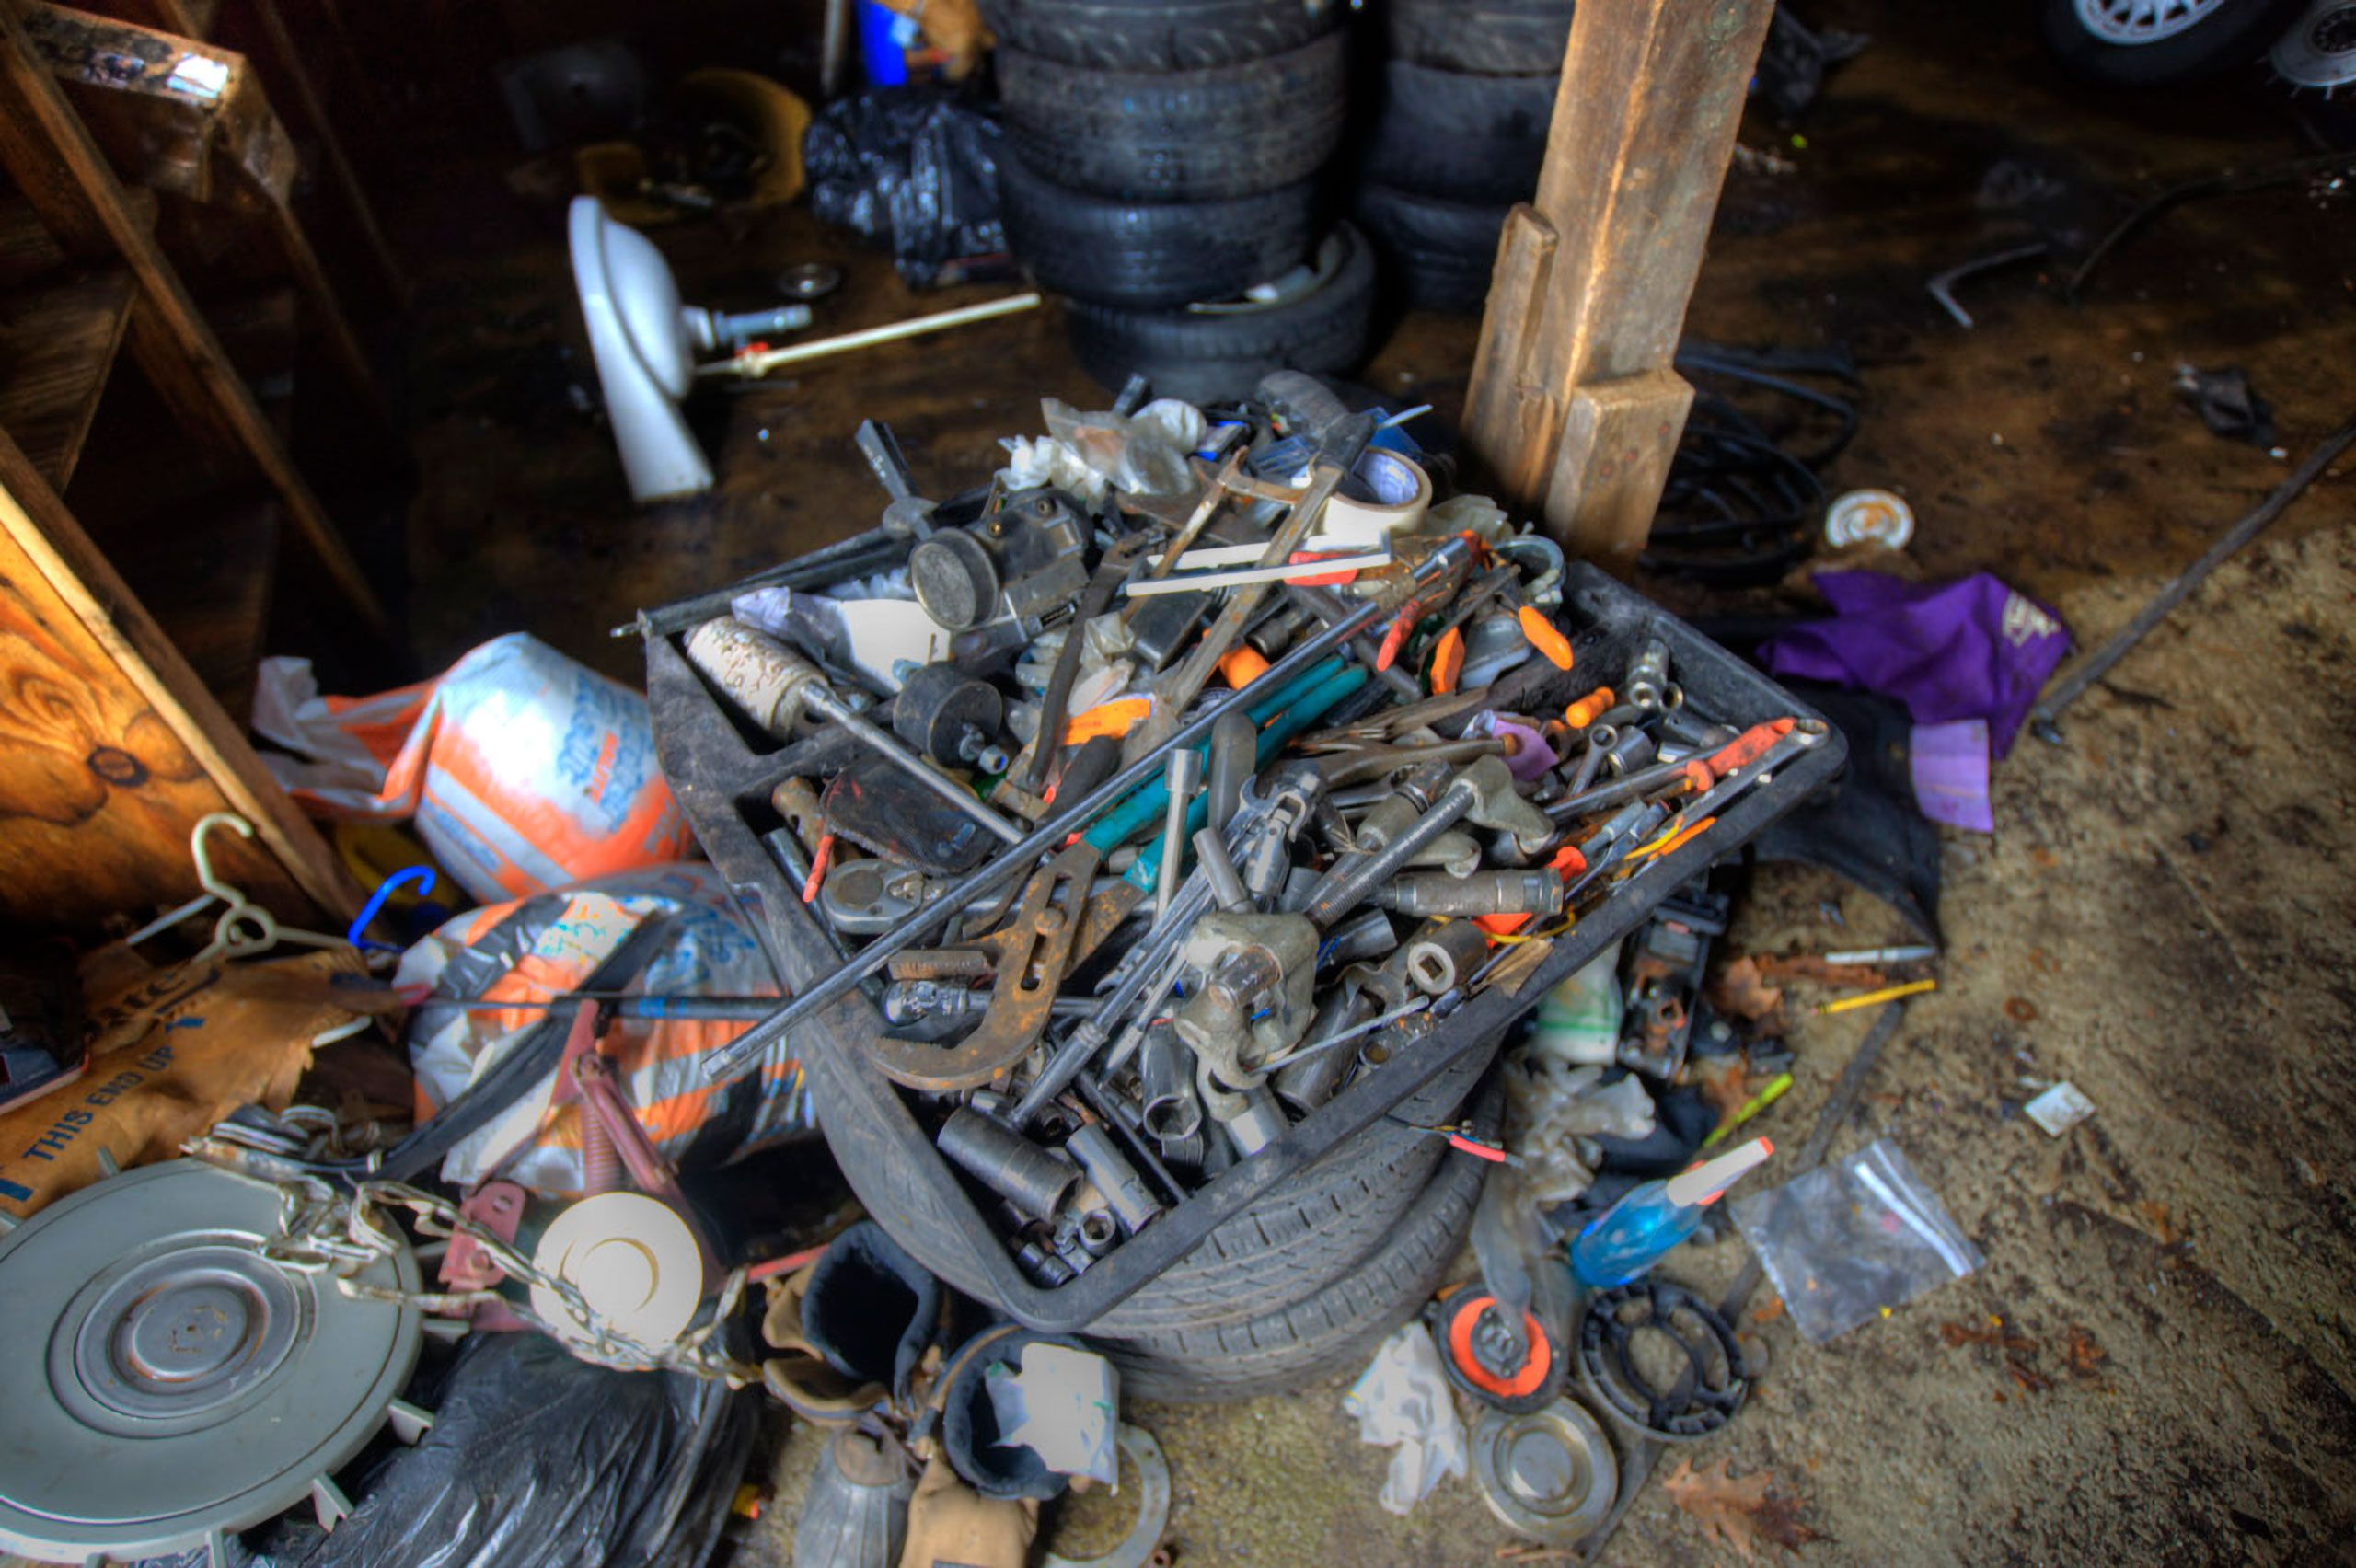 Messy tools in a messy garage